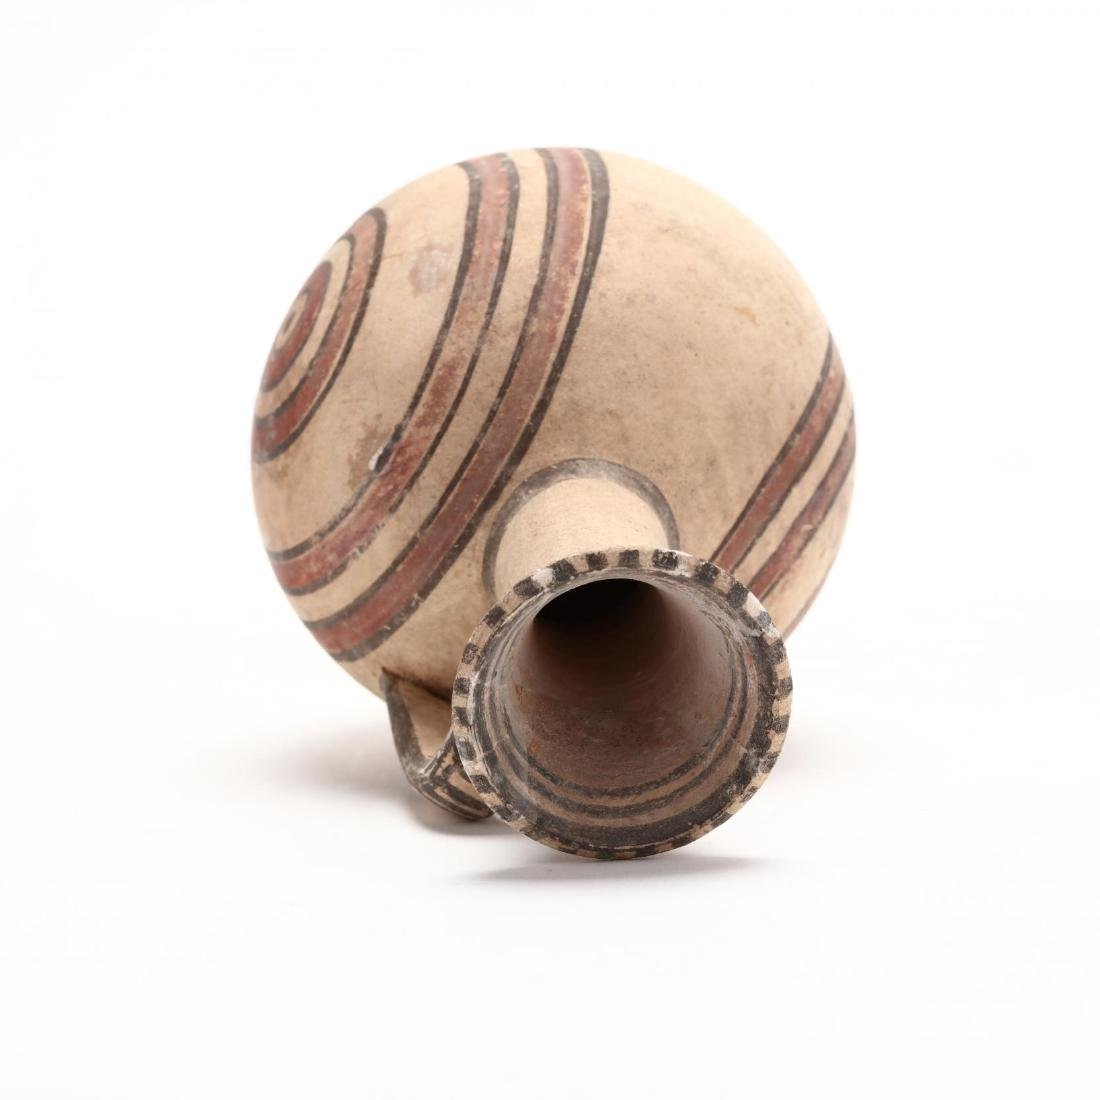 Cypro-Archaic Barrel Flask - 3